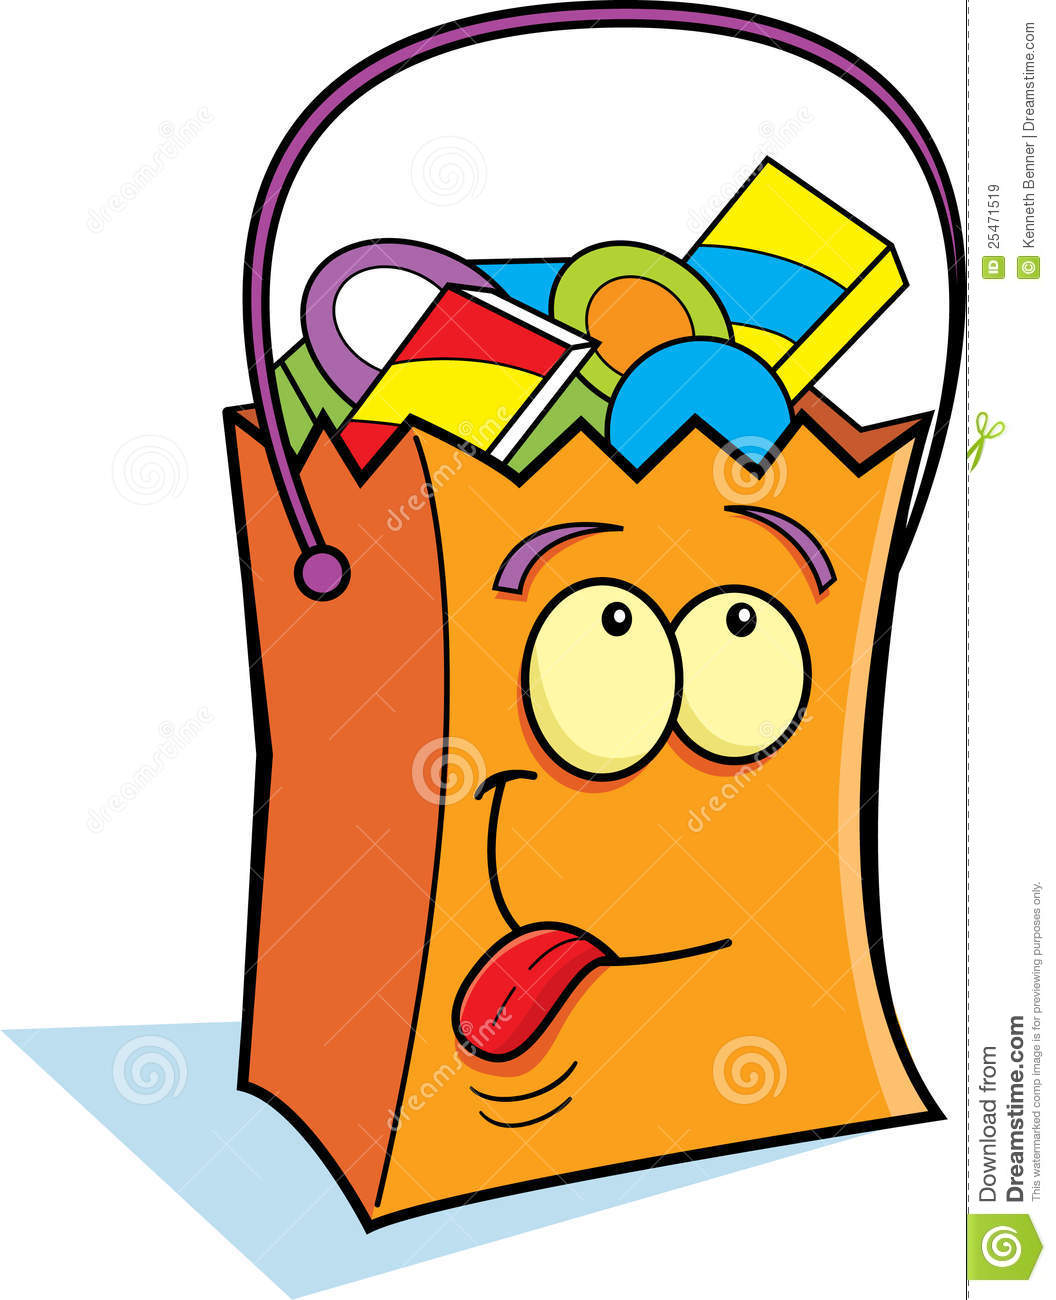 Cartoon illustration of a trick or treat bag filled with candy.